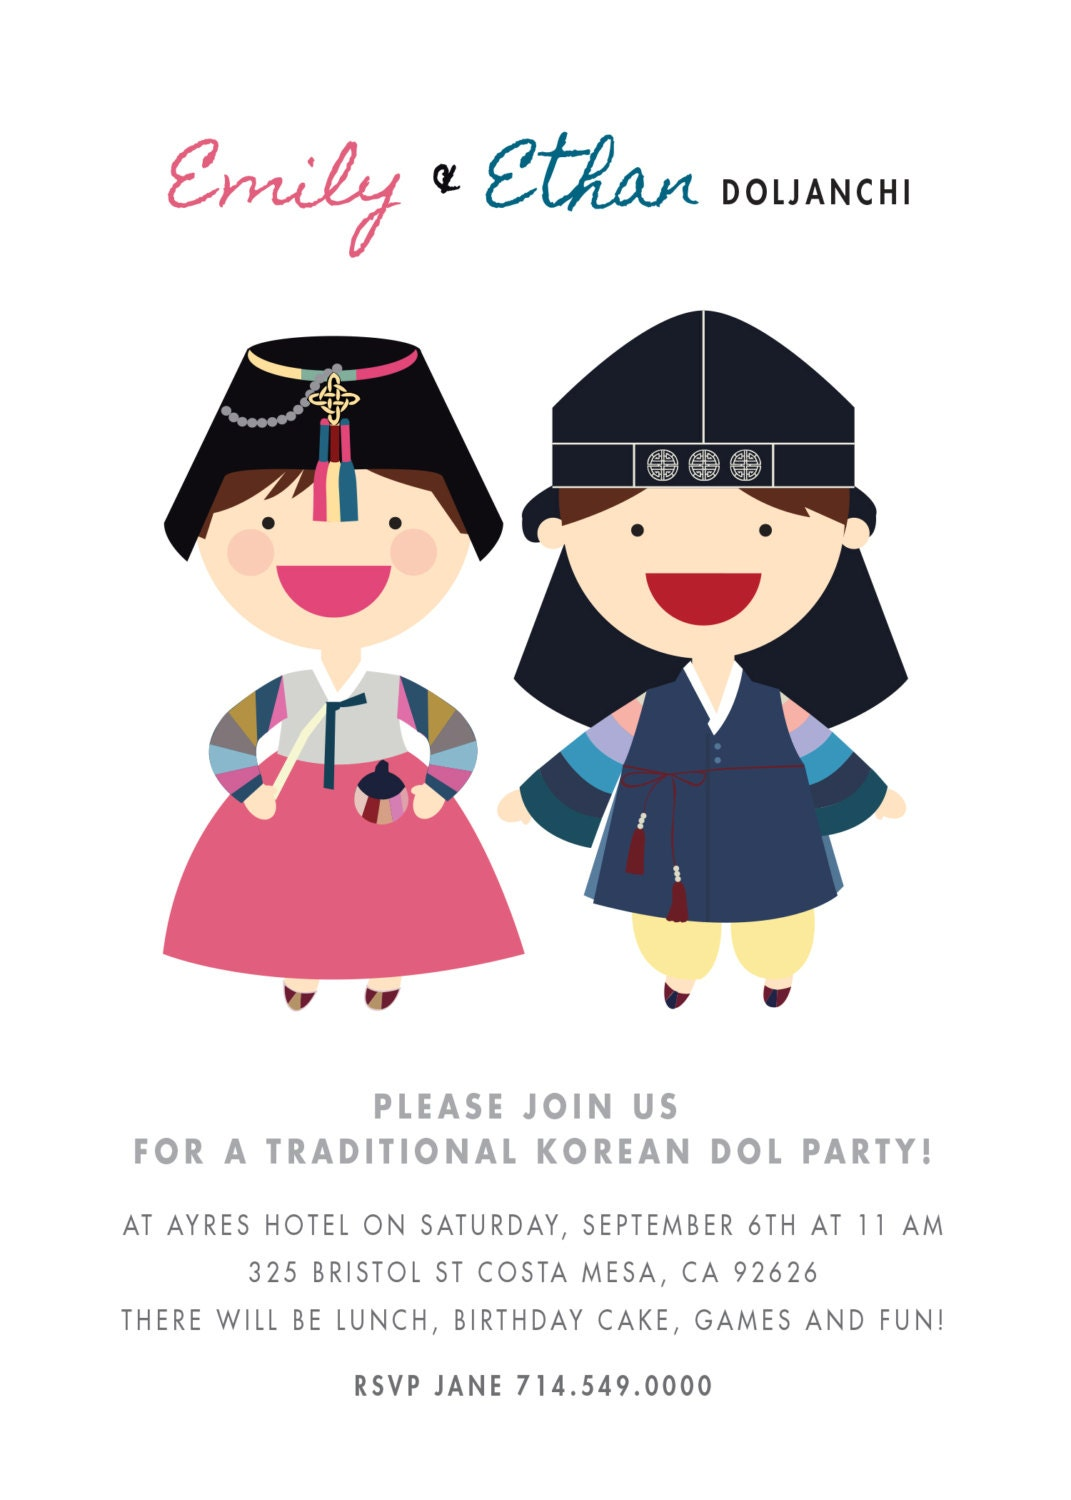 Doljanchi invitation custom boy girl twins korean first birthday dol doljanchi invitation custom boy girl twins korean first birthday dol doljanchi printable digital file filmwisefo